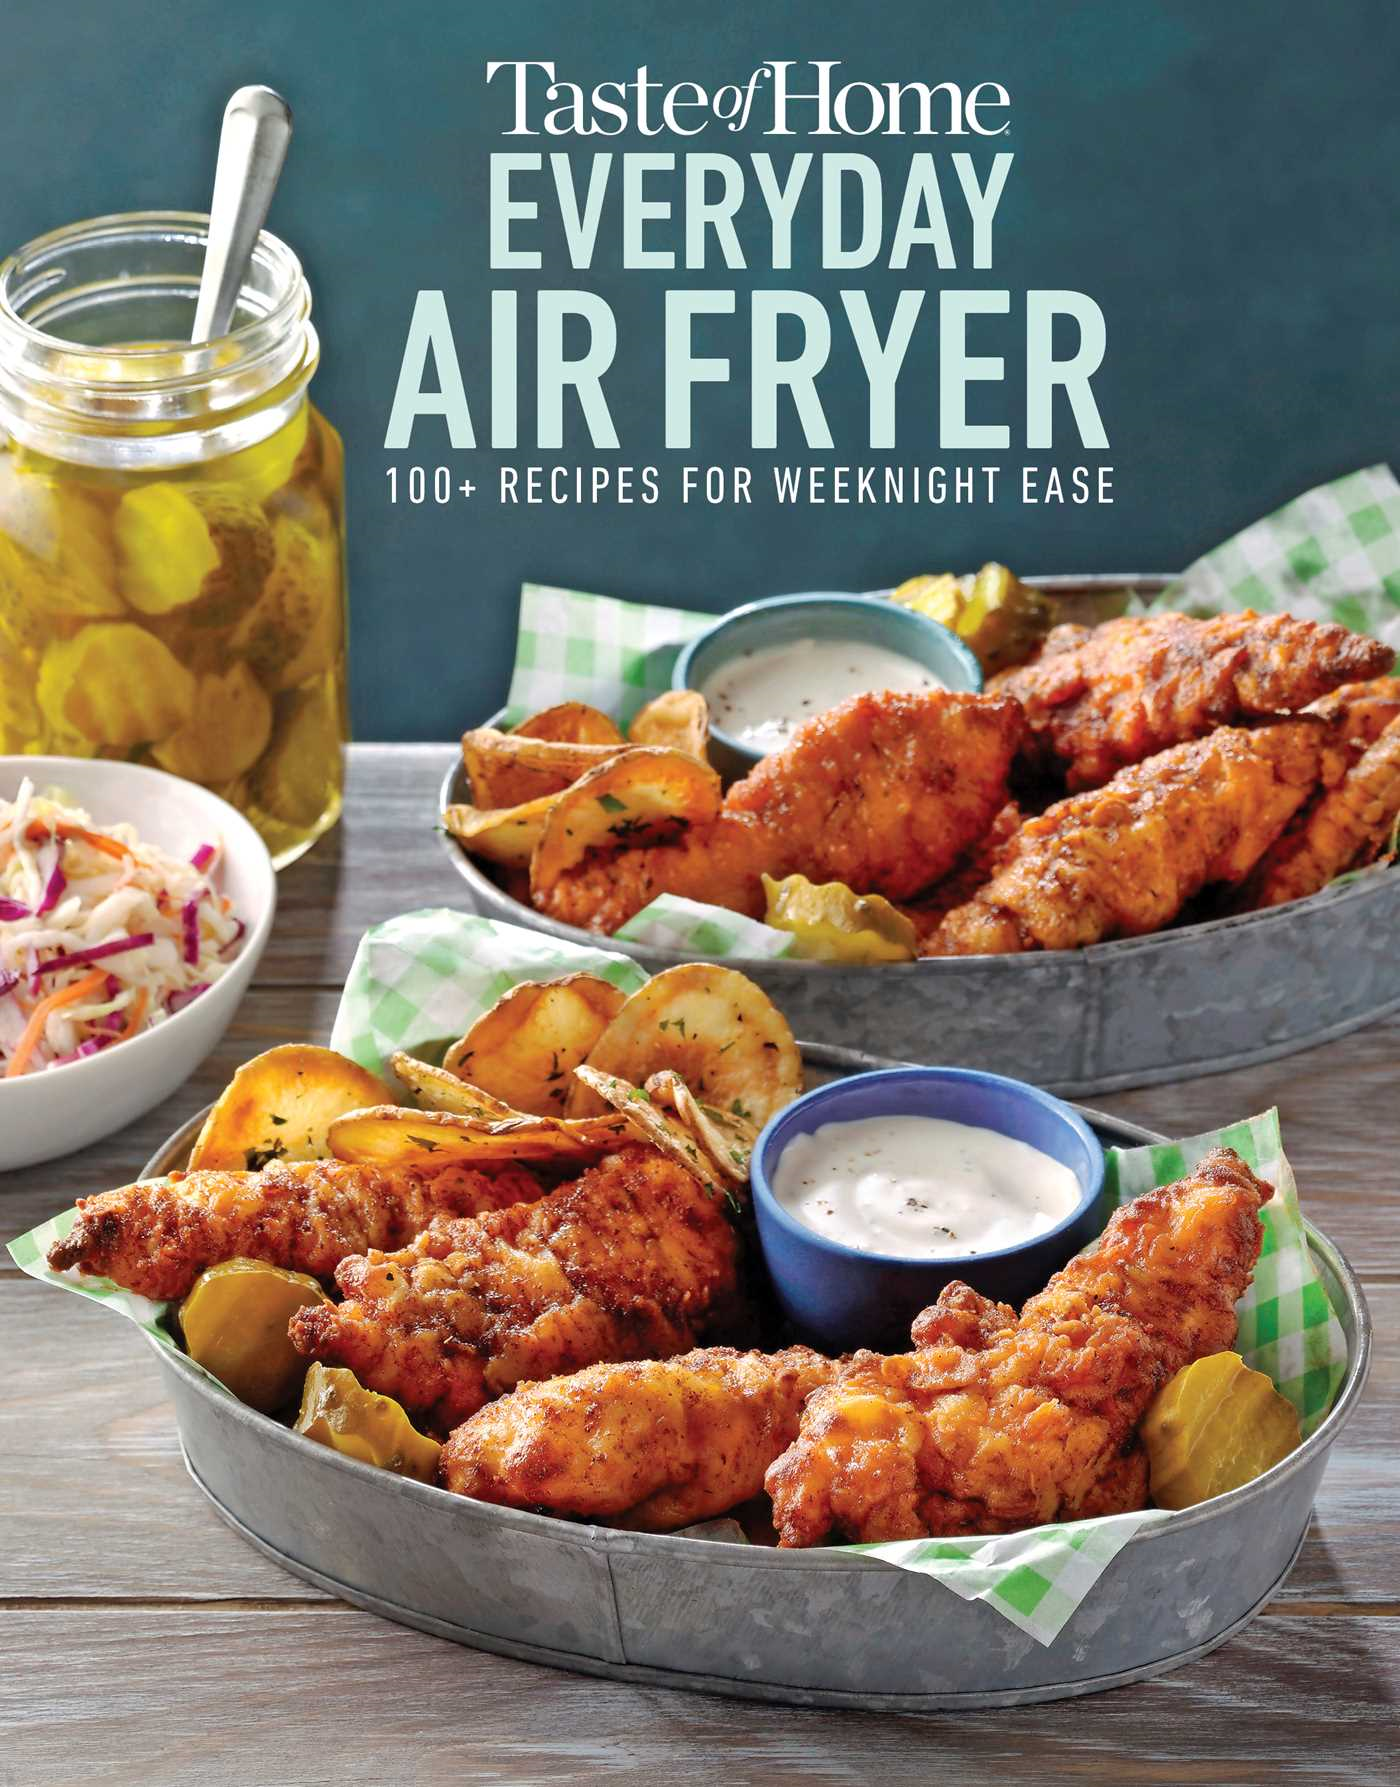 Taste of Home Everyday Air Fryer